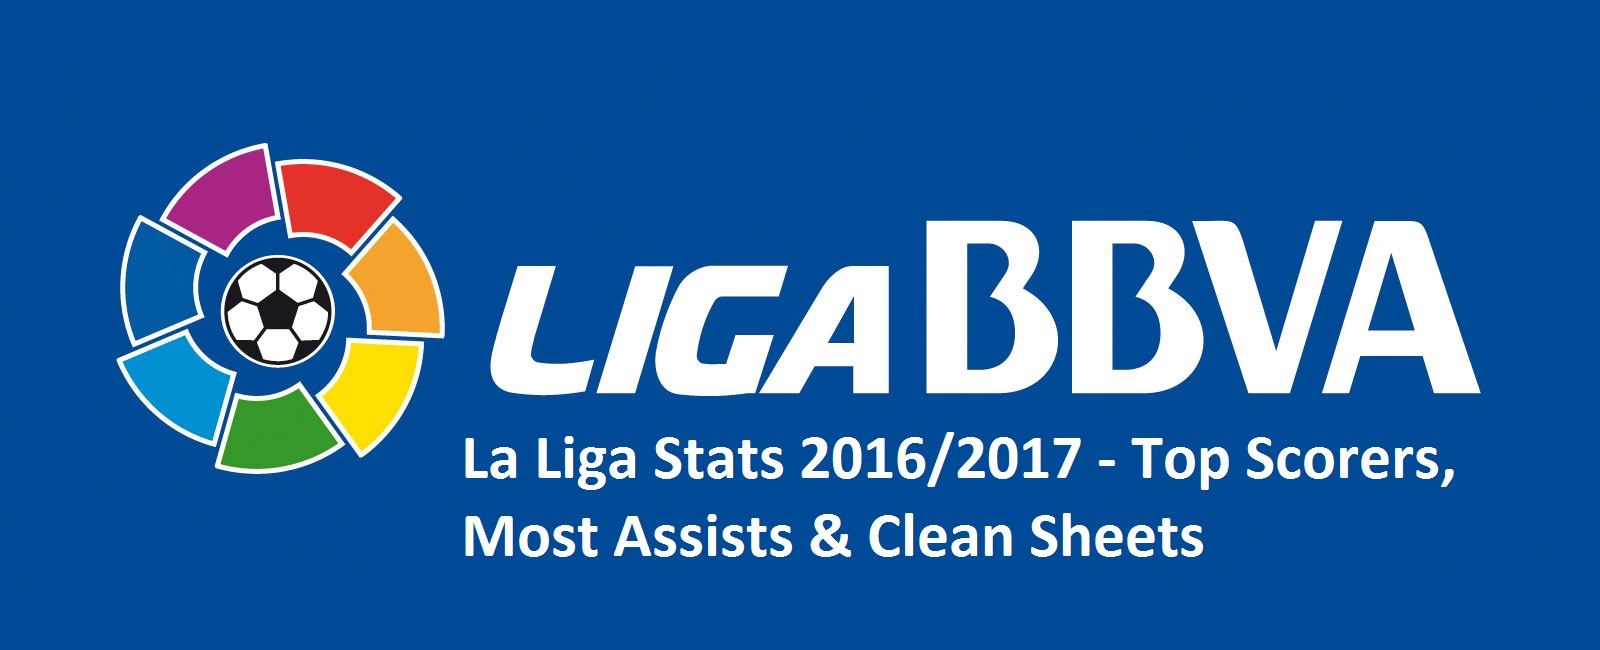 La Liga Stats 2017/2018 - Top Scorers, Most Assists, Clean Sheets